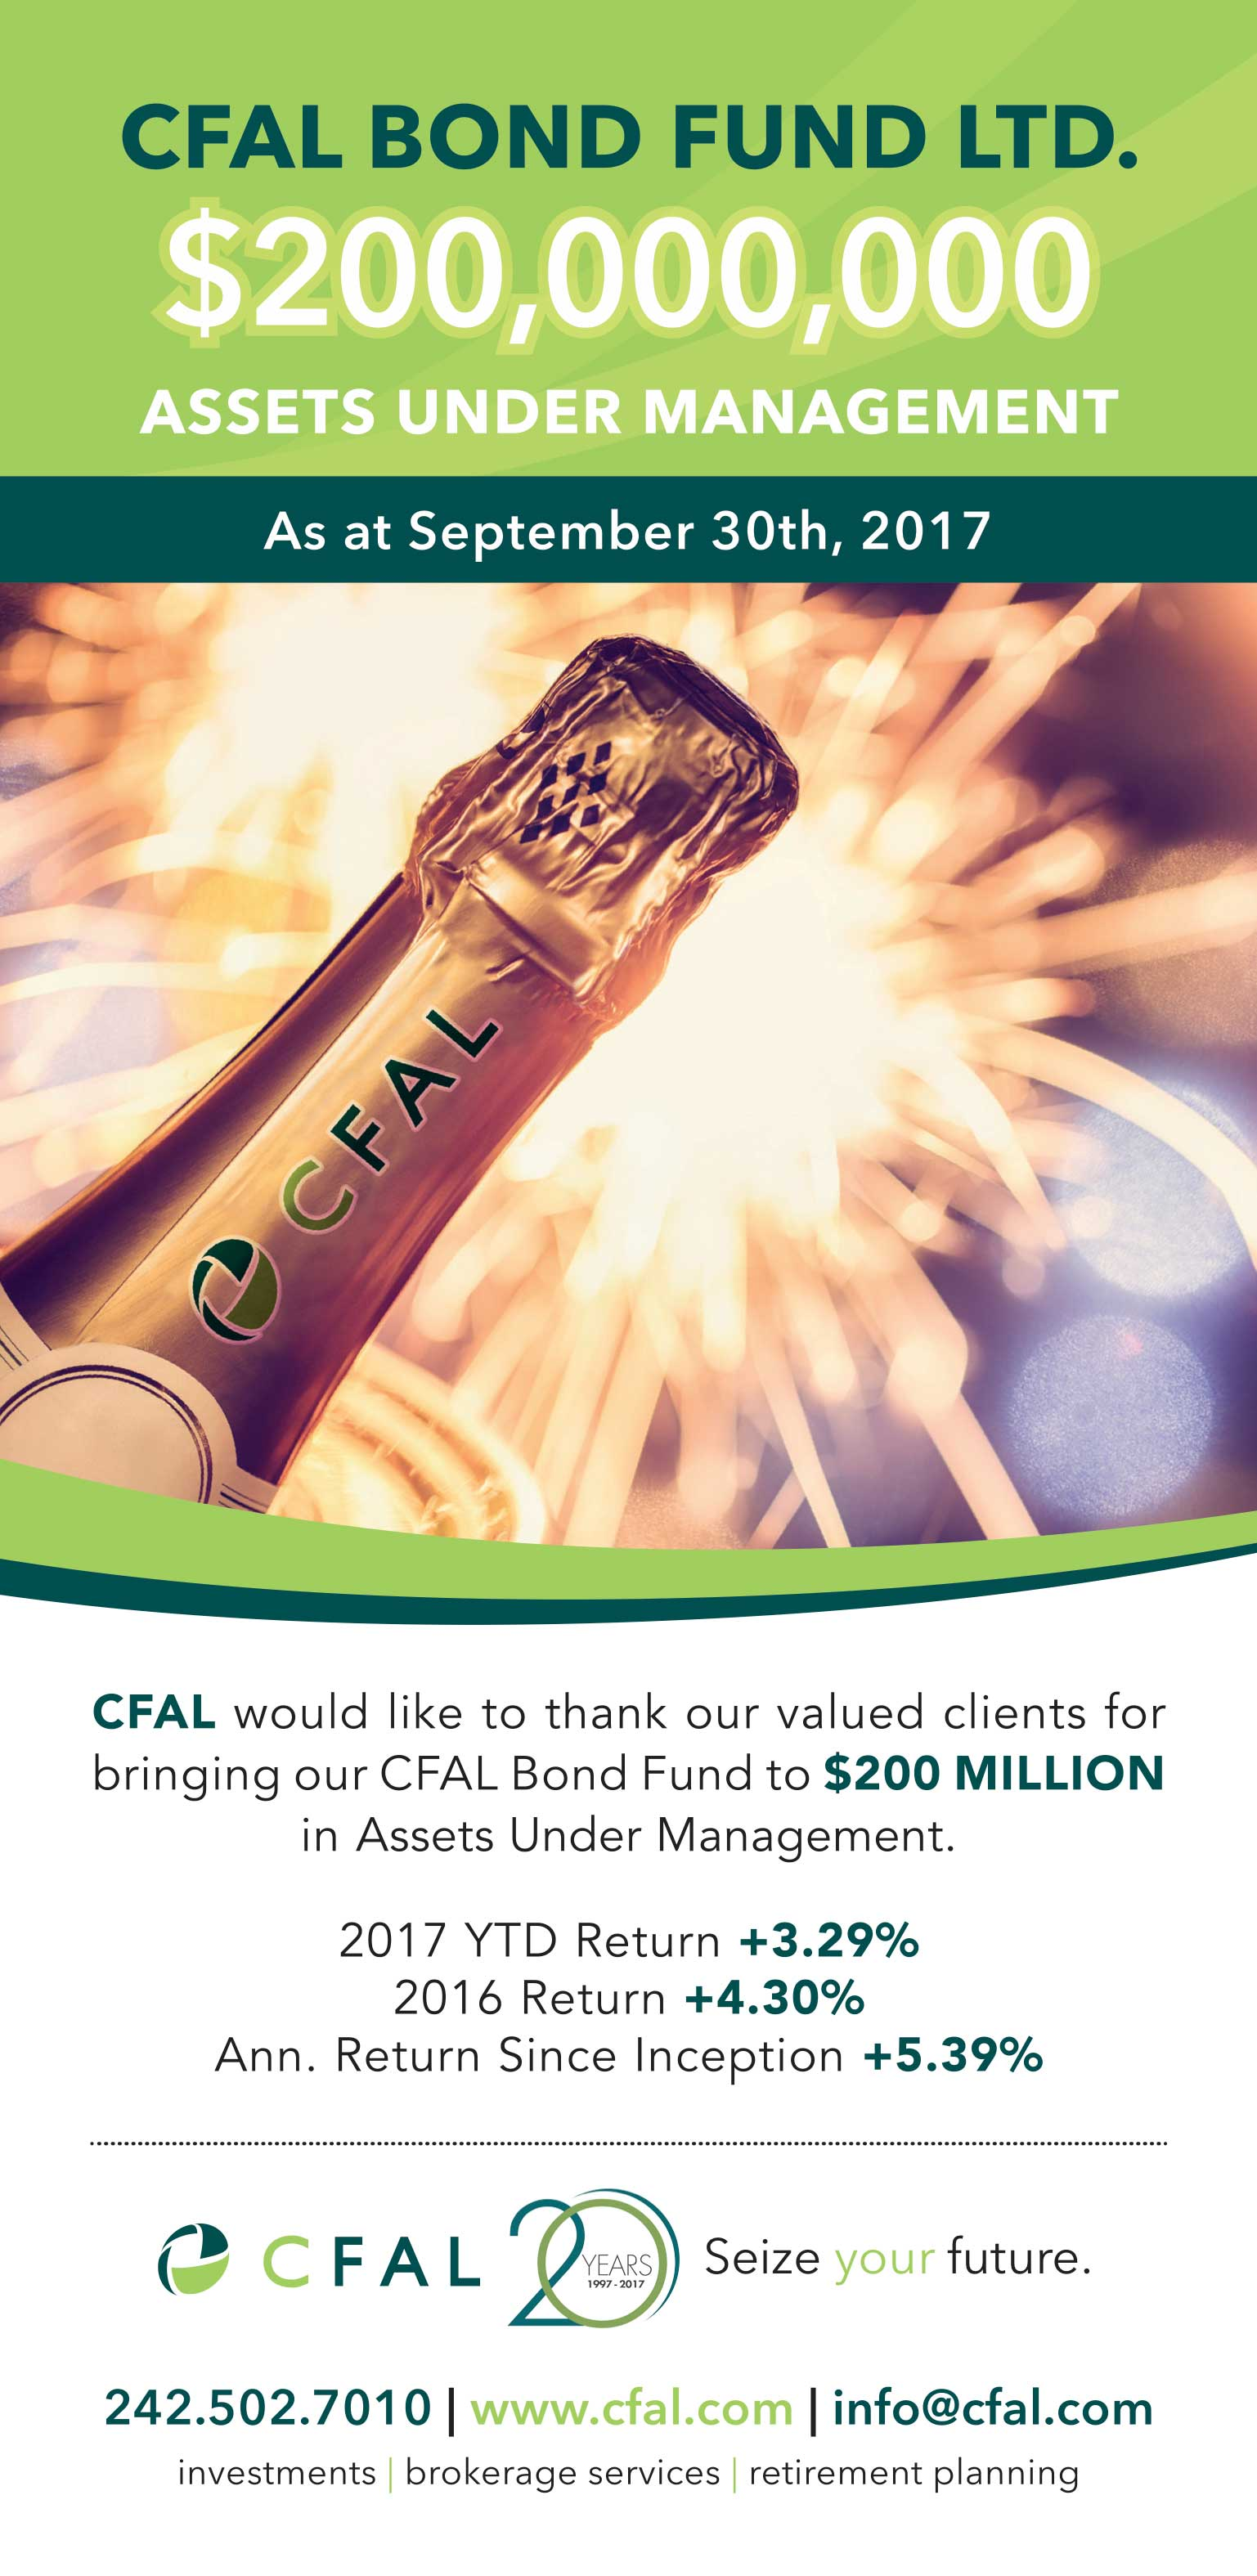 cfal-bond-fund-ad_final-V4.jpg